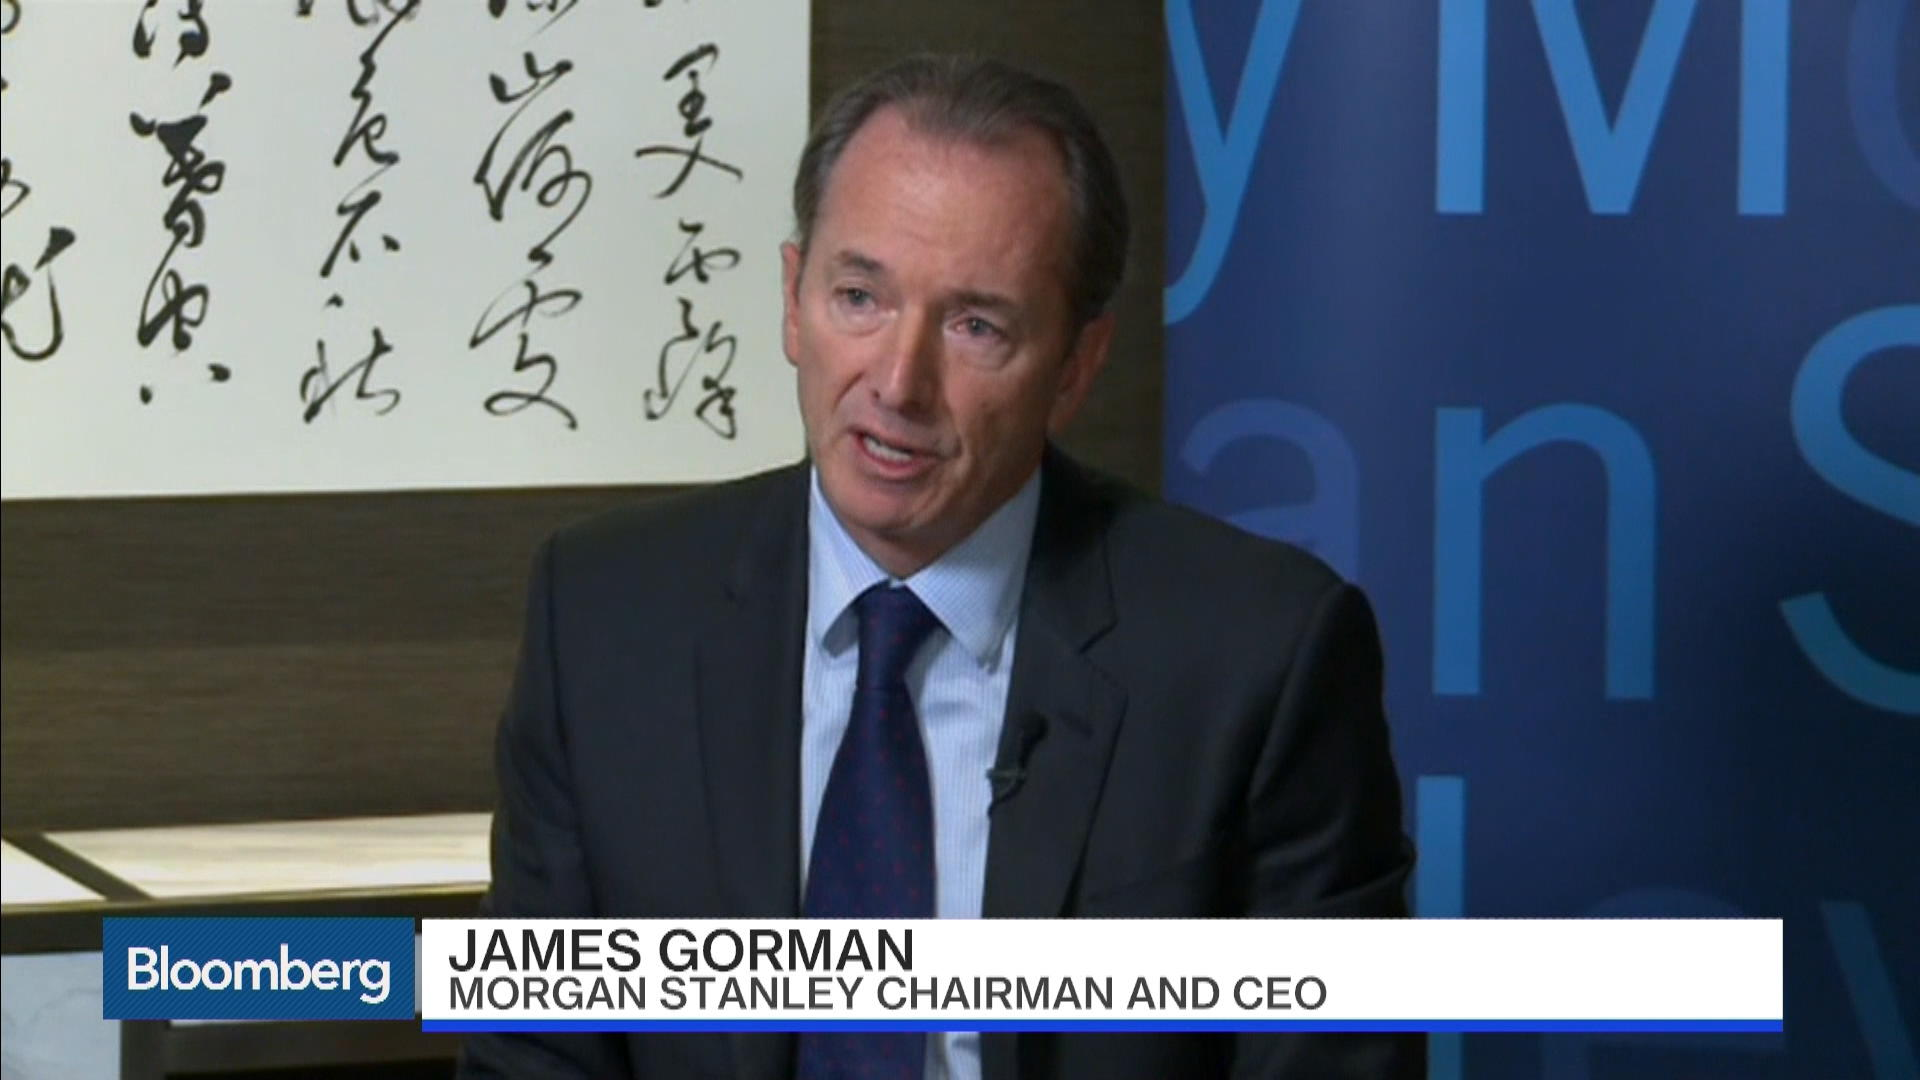 Morgan Stanley S Gorman On Rates Brexit And China Bloomberg